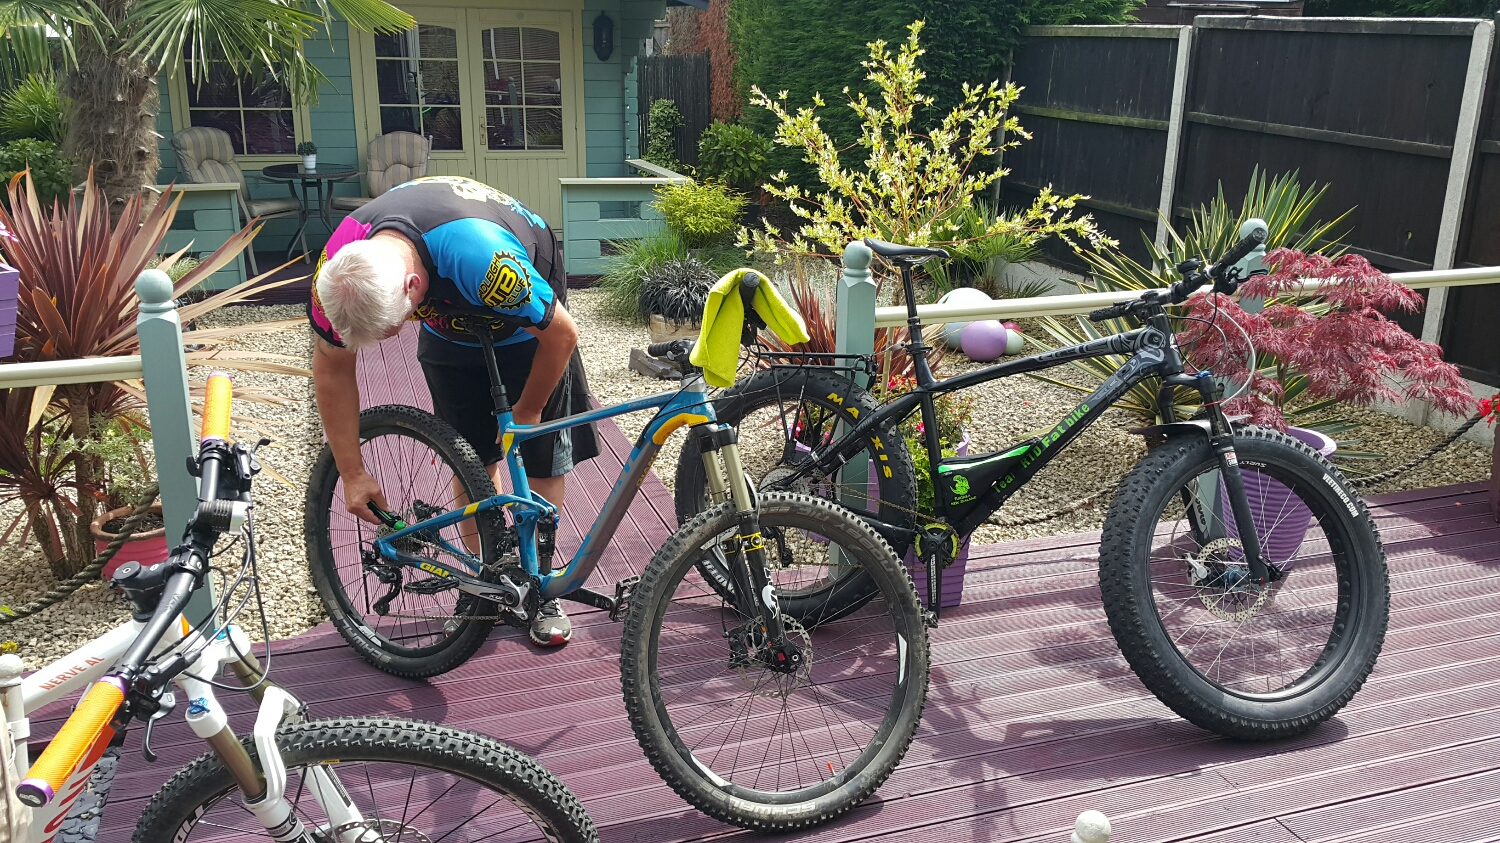 Rob getting the bikes ready for a ride over to meet Michael Travers at the 2012 Olympic course.